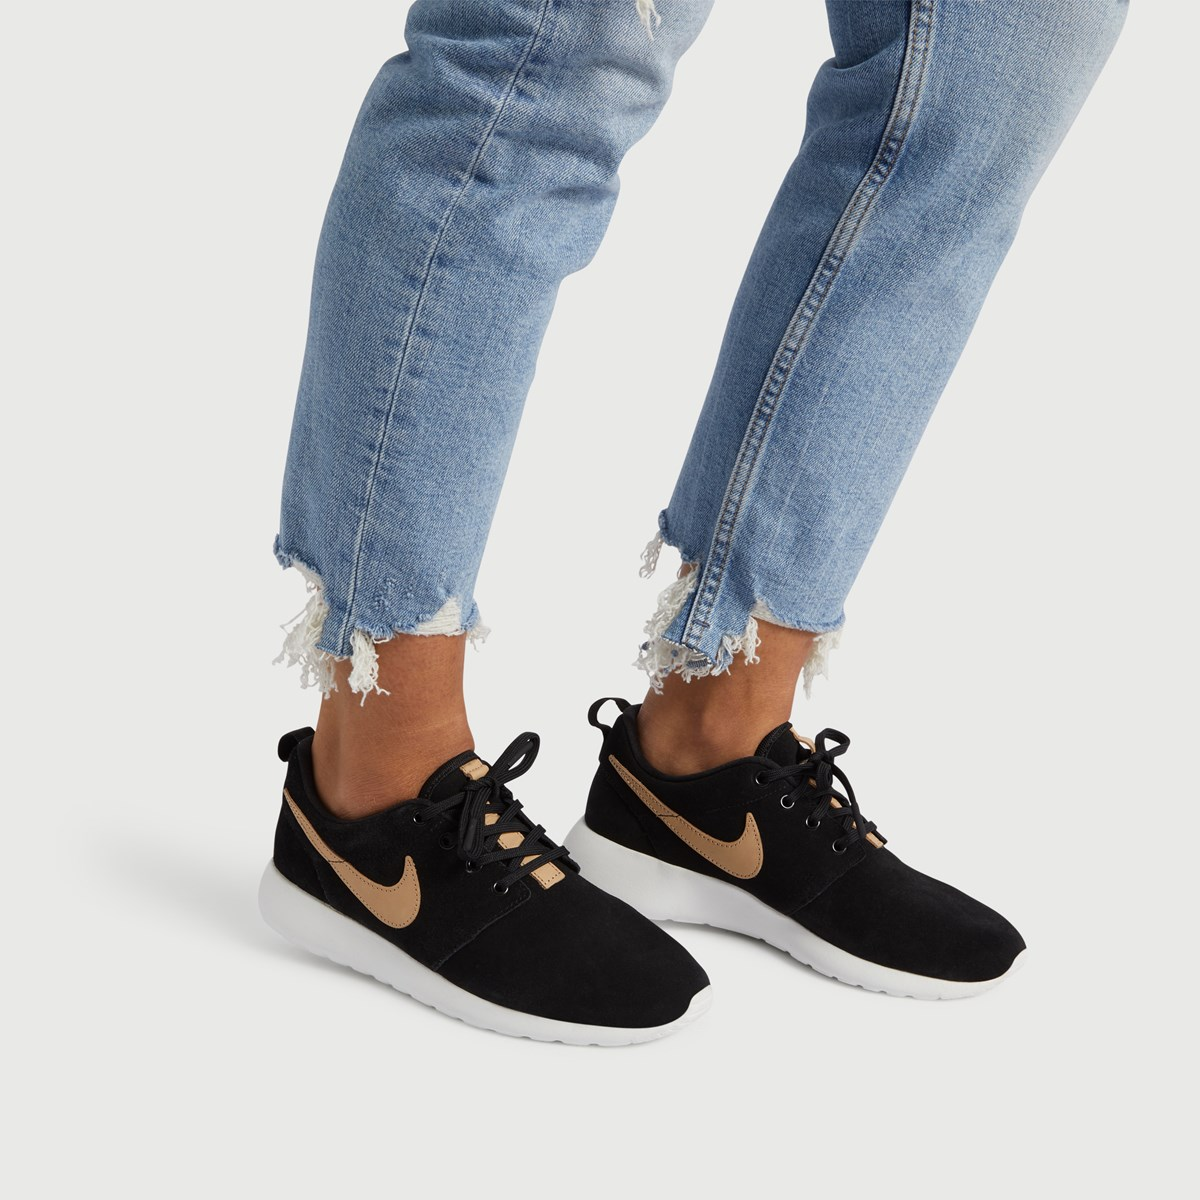 sports shoes cab79 8790b LB Exclusive Womens Roshe One Premium Sneaker in Black. Previous. default  view ...